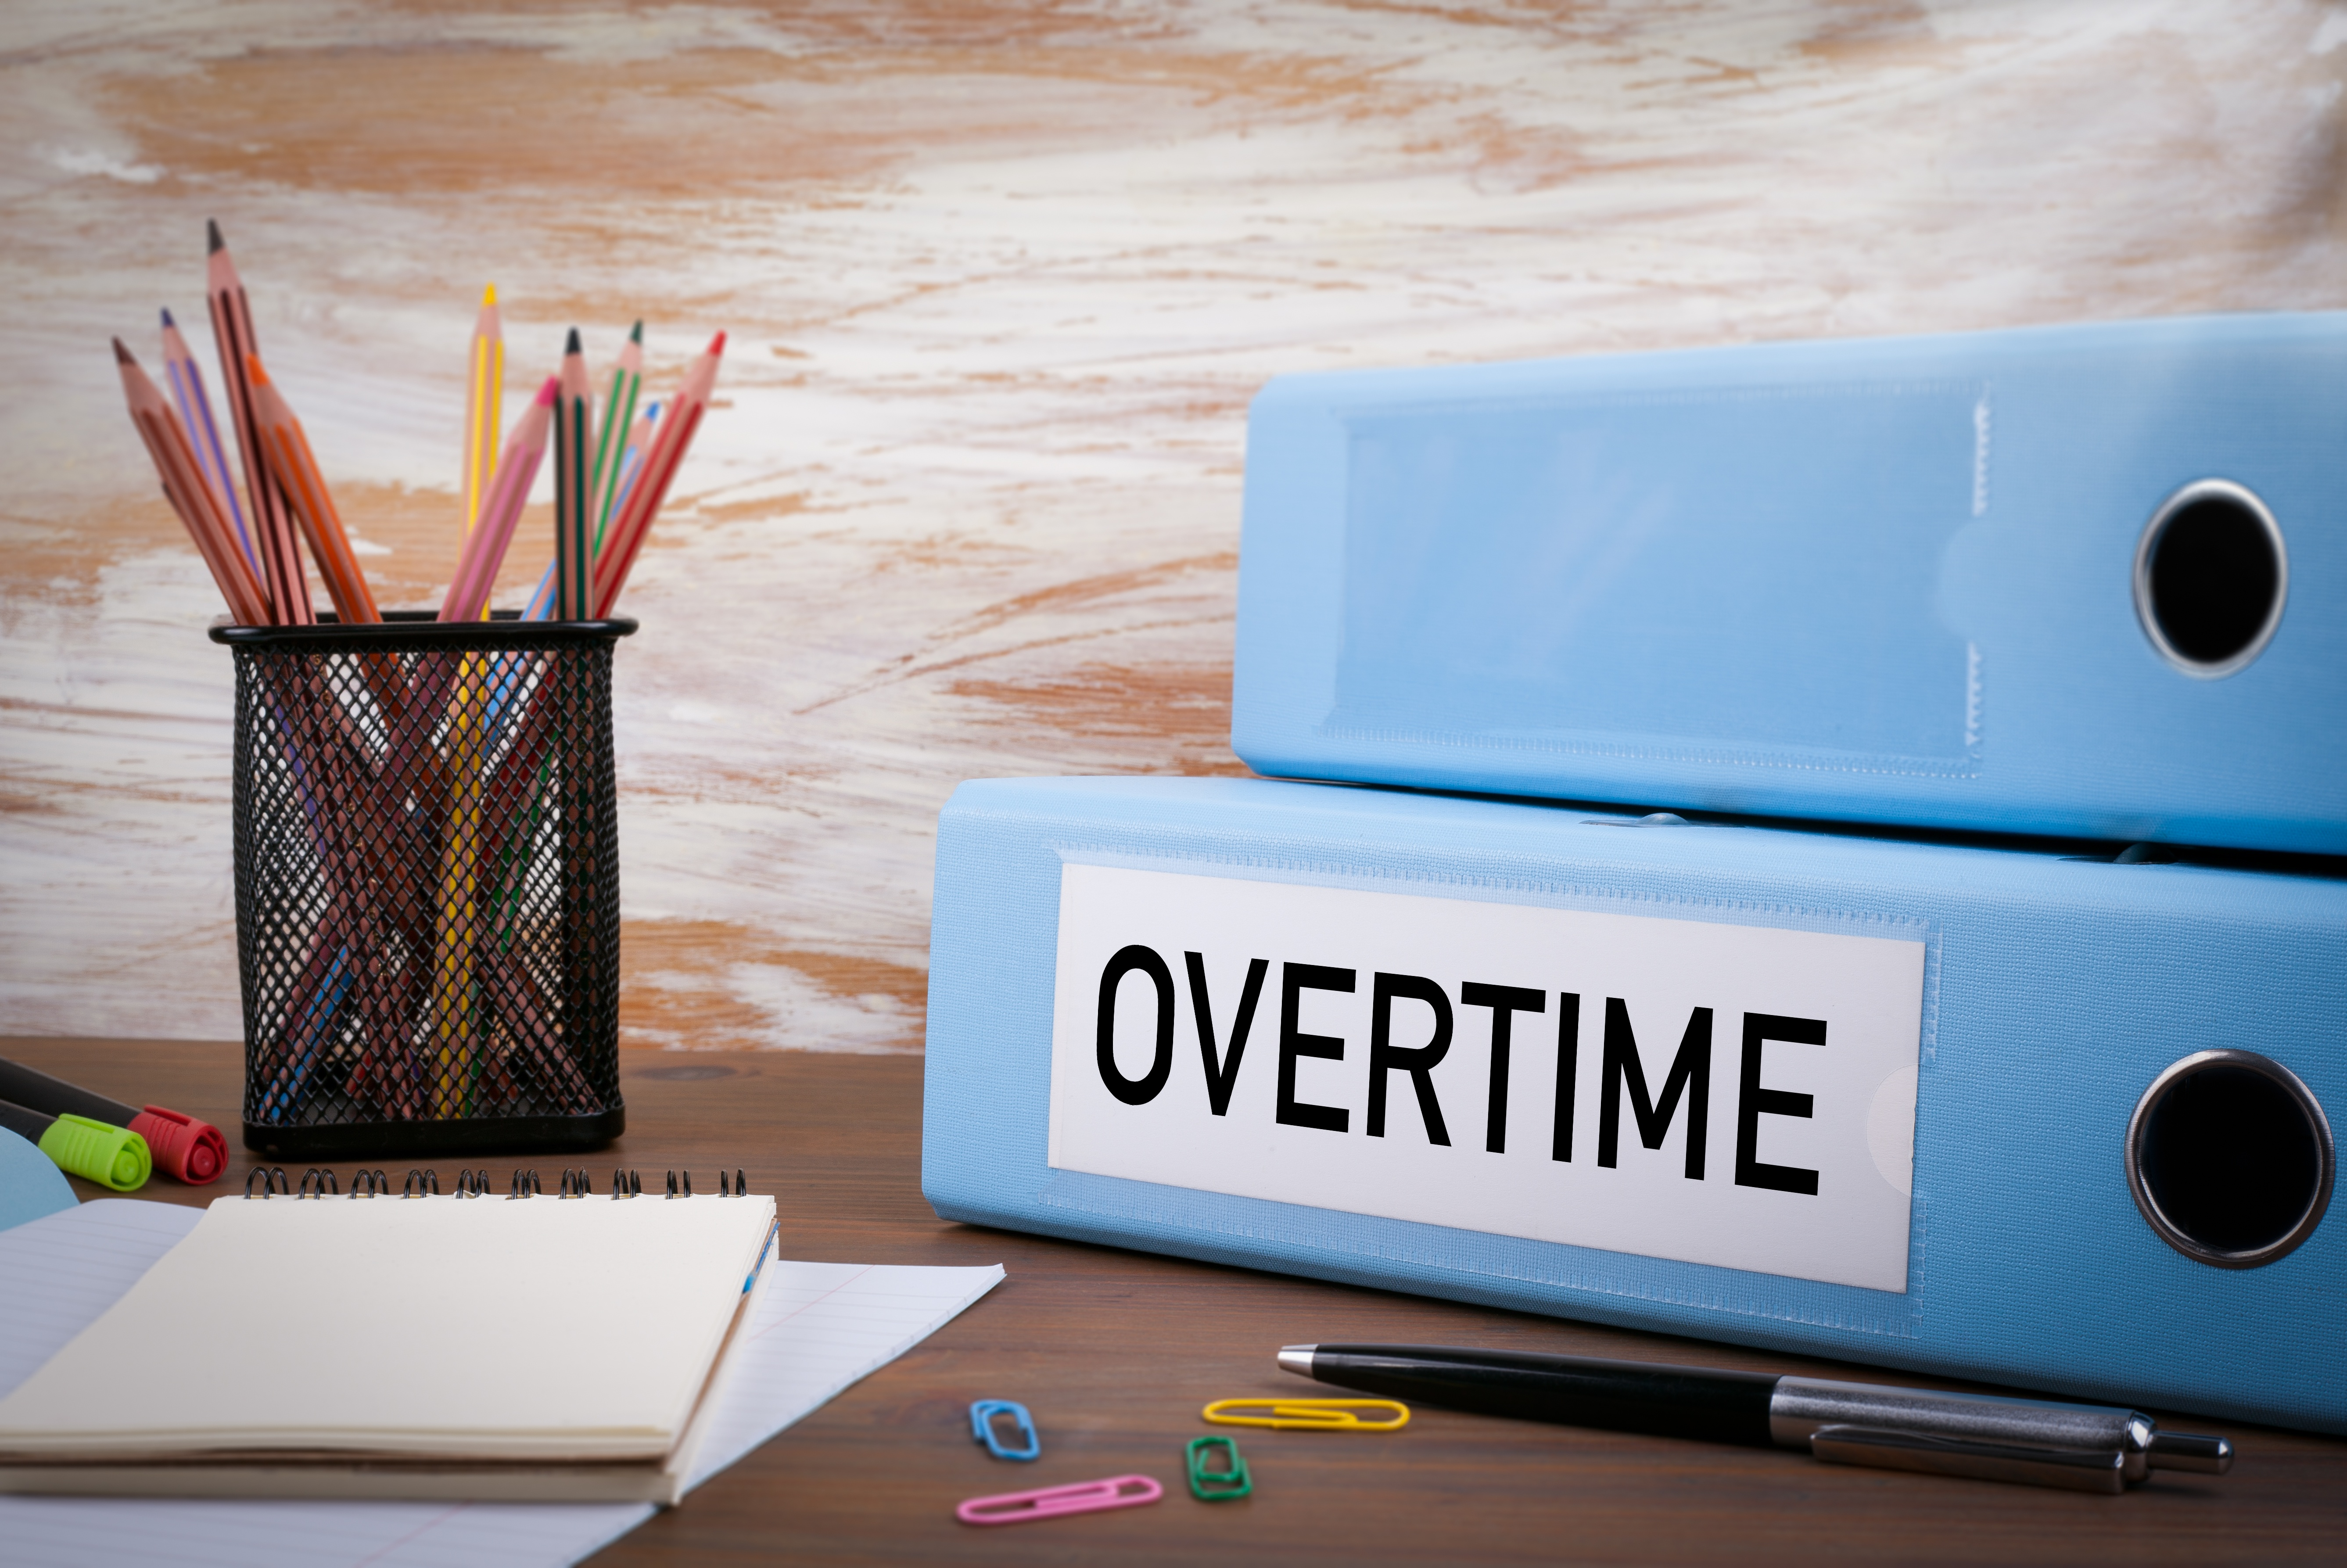 Overtime rule officially blocked